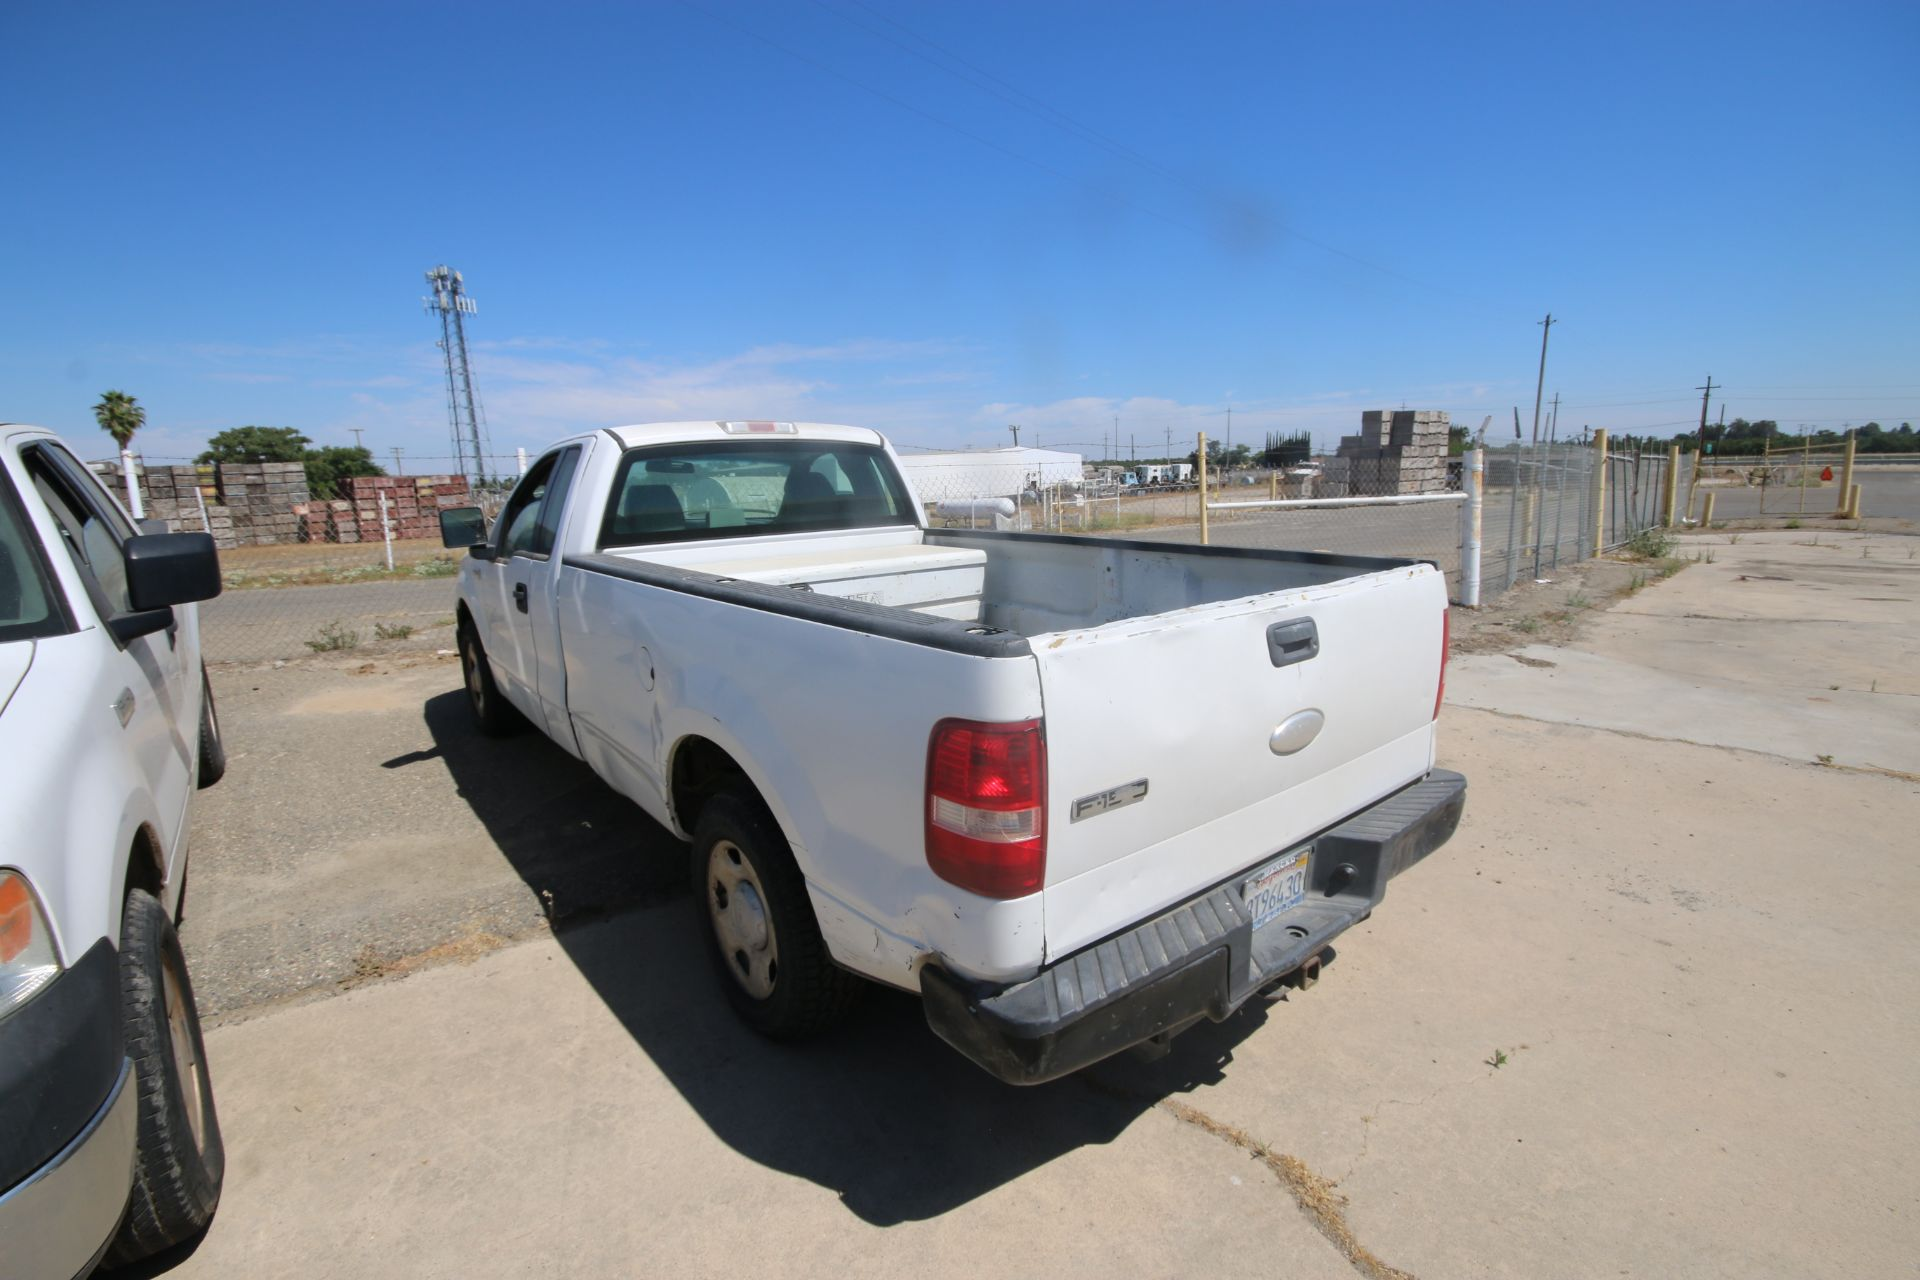 2006 Ford F150 L/B Pick Up Truck, VIN #: 1FTRF12256NA38863, with 167,638 Miles, Started Up as of - Image 8 of 18